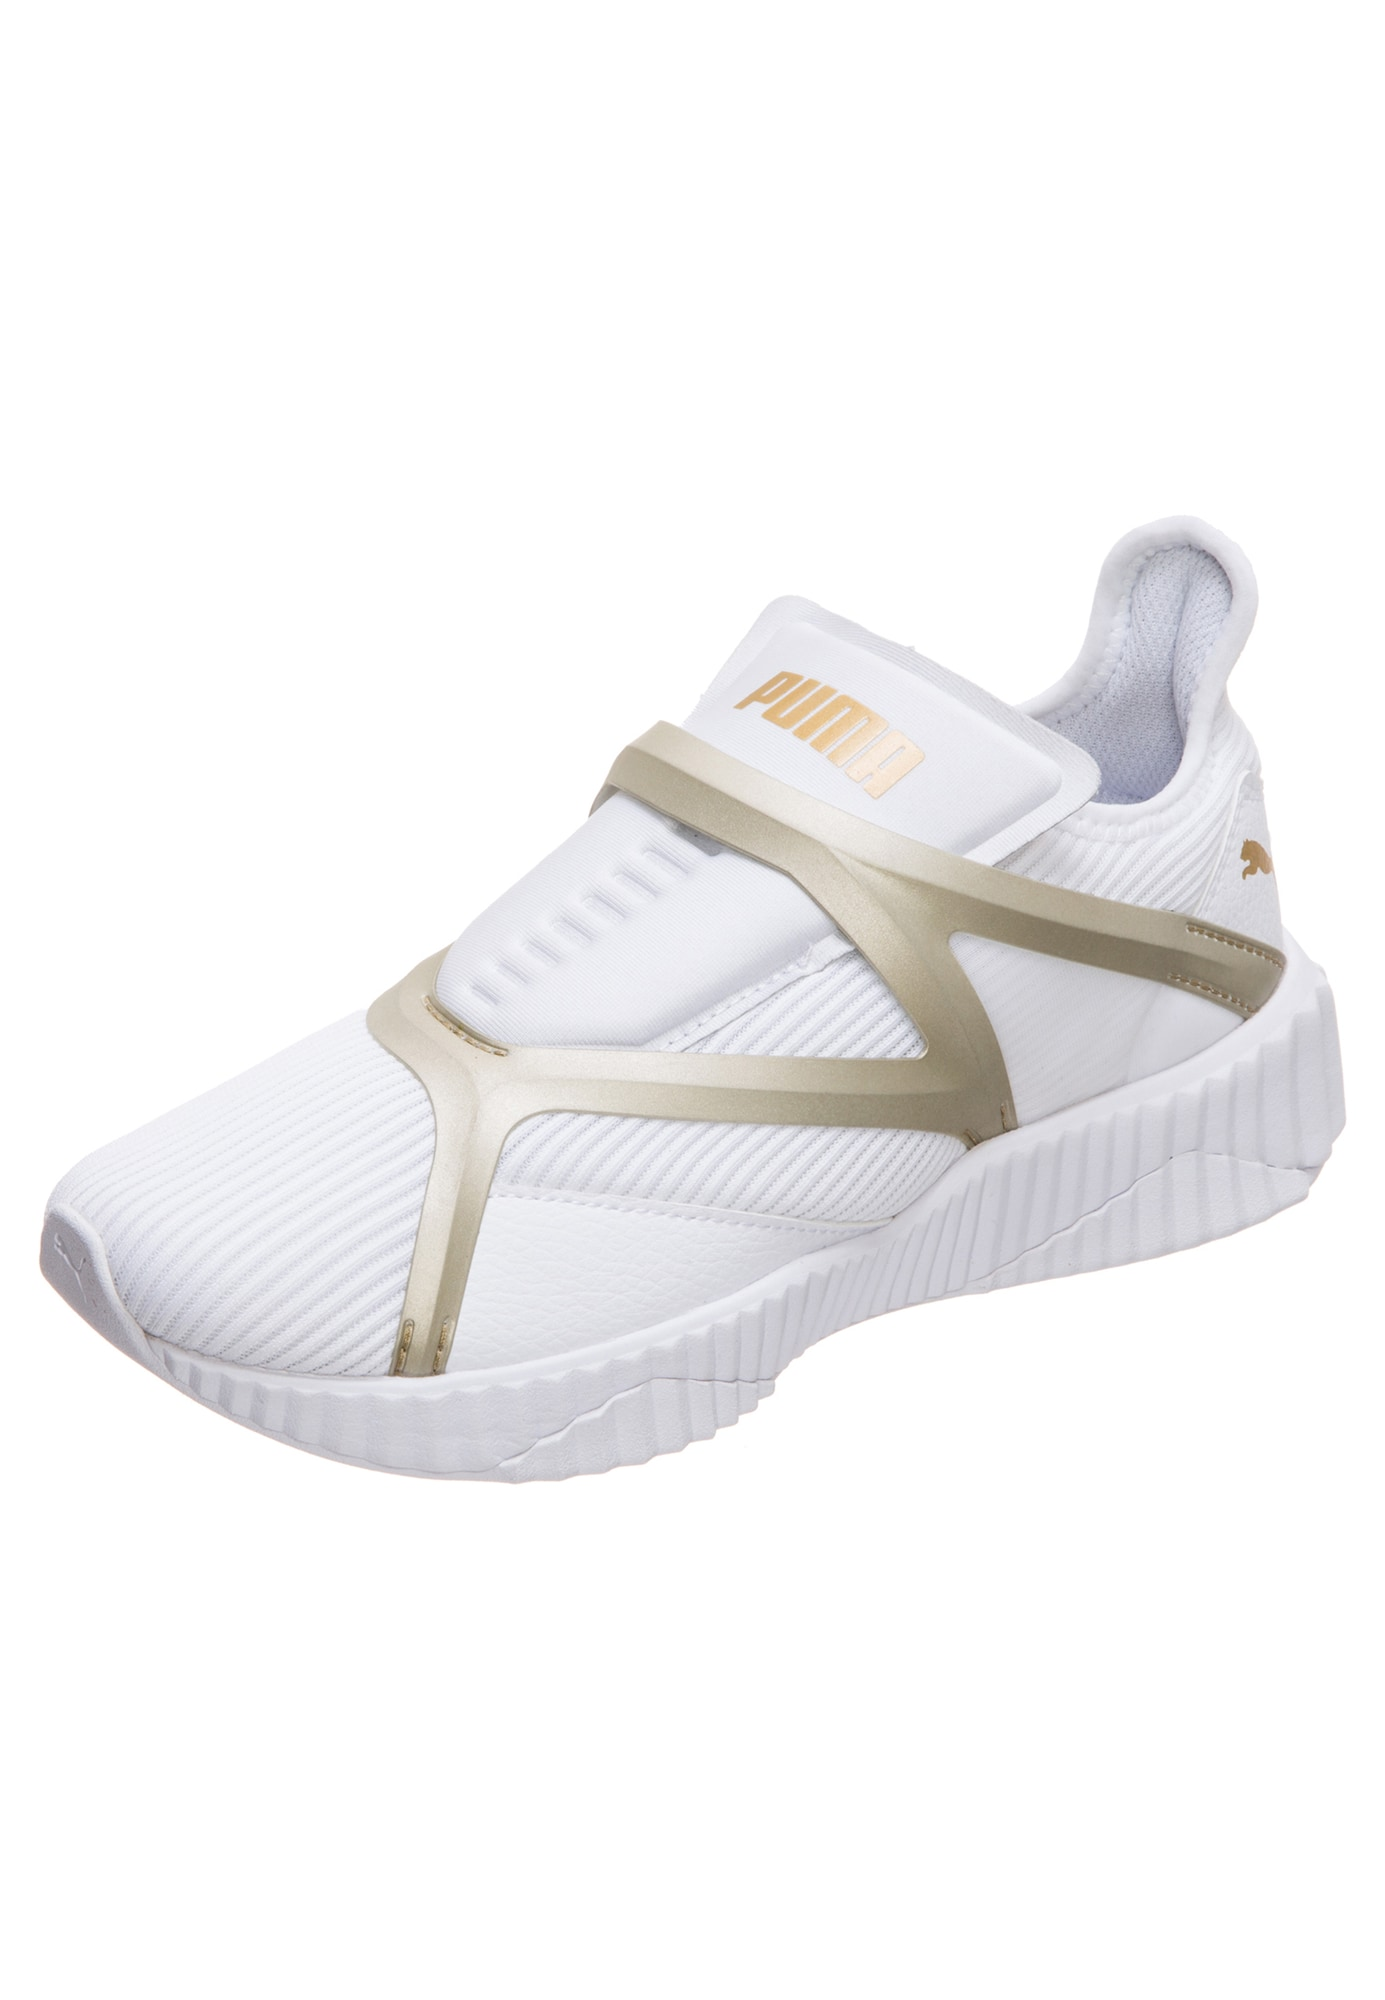 PUMA, Dames Sneakers laag 'Defy Cage', goud / wit